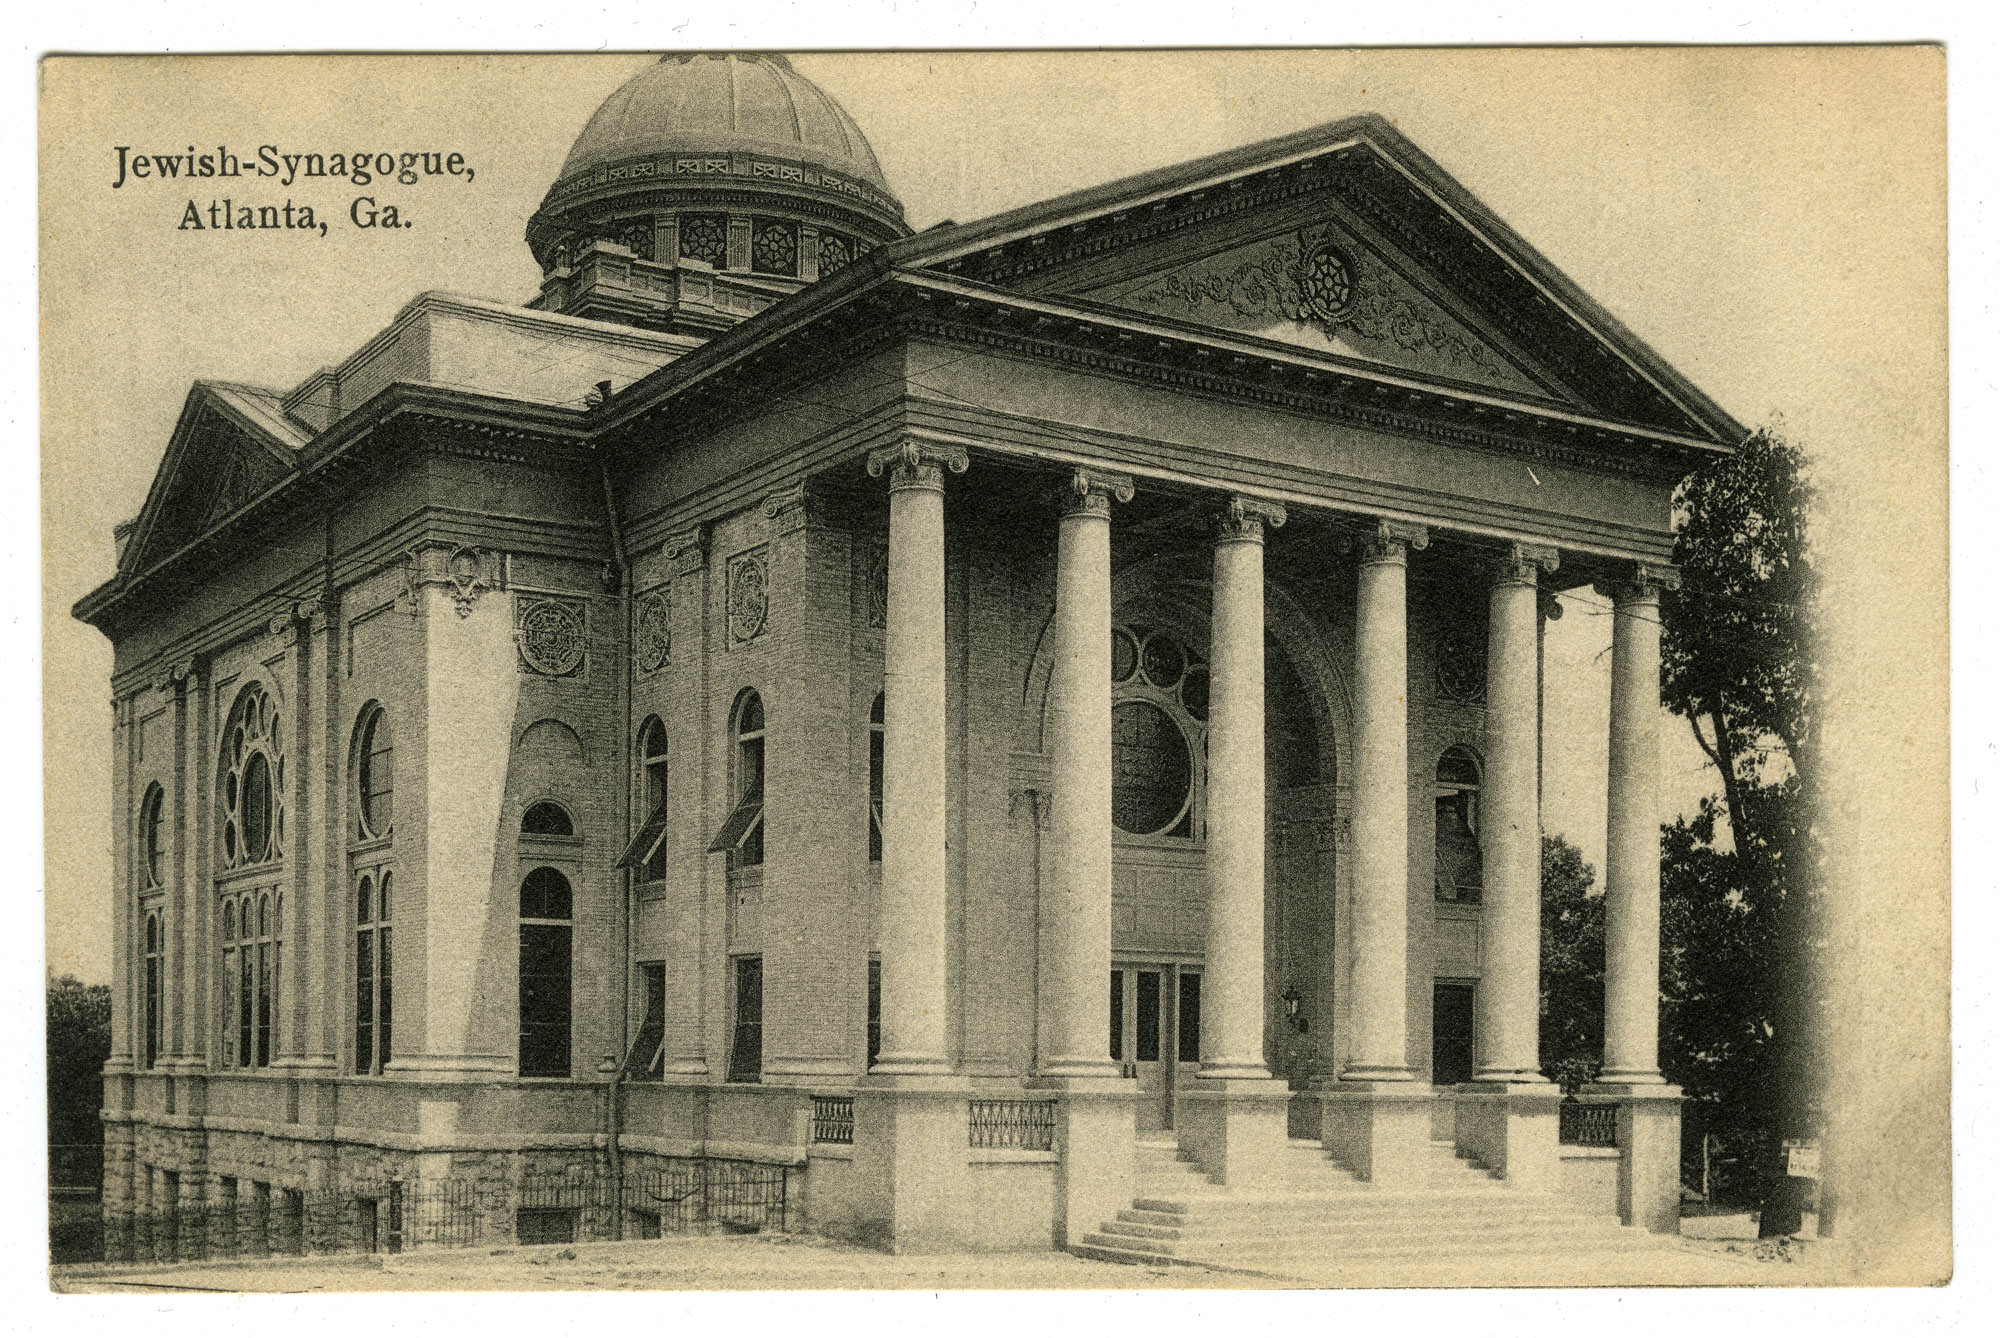 Jewish-Synagogue, Atlanta, Ga.